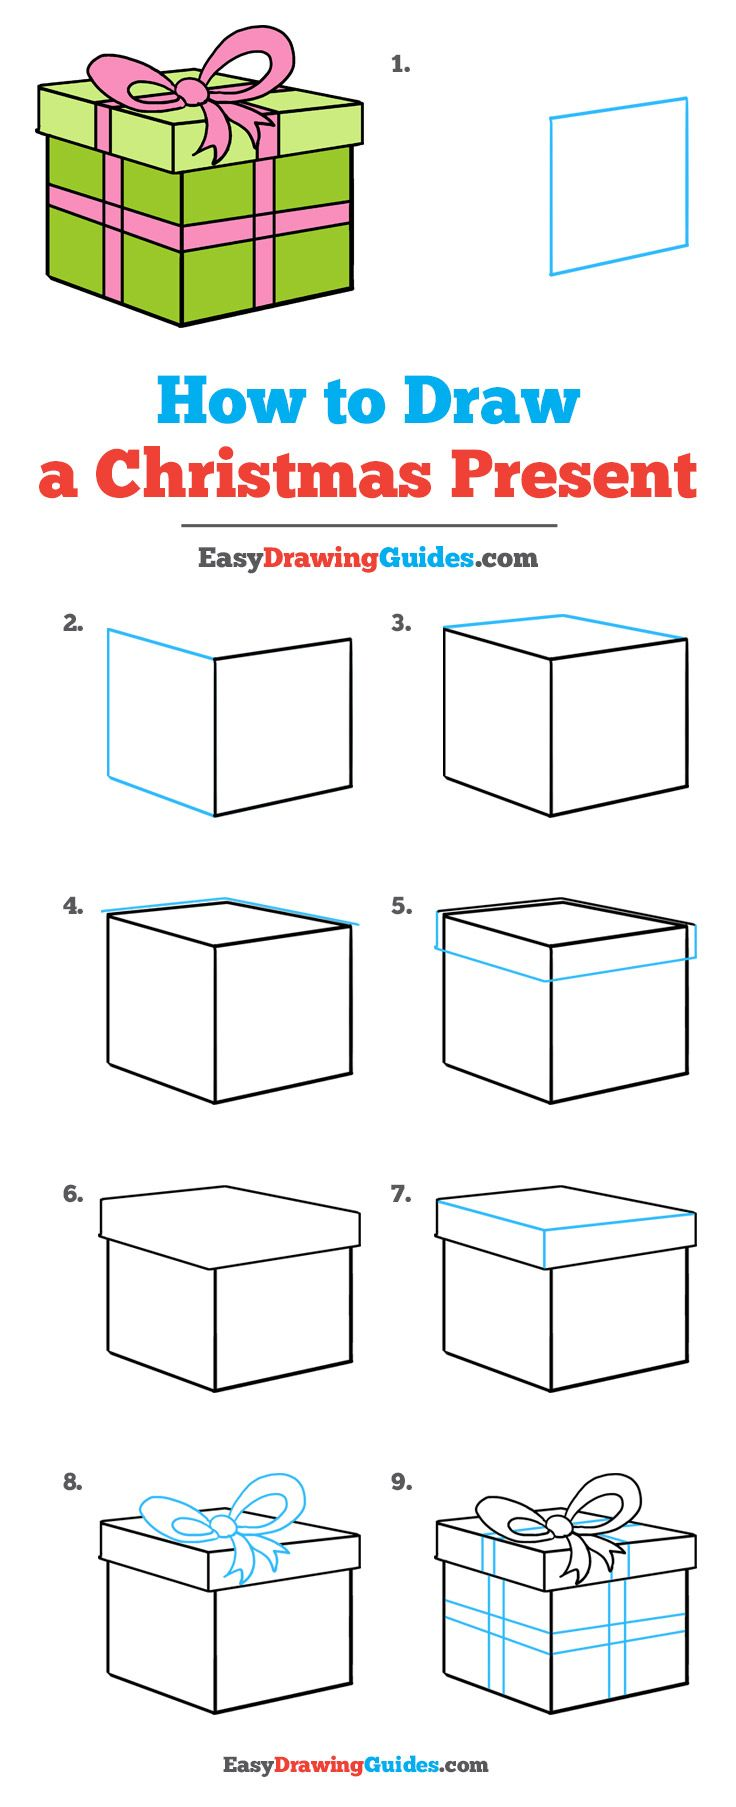 Learn How to Draw a Christmas Present: Easy Step-by-Step Drawing Tutorial for Kids and Beginners. #ChristmasPresent #drawingtutorial #easydrawing See the full tutorial at https://easydrawingguides.com/how-to-draw-christmas-present/.